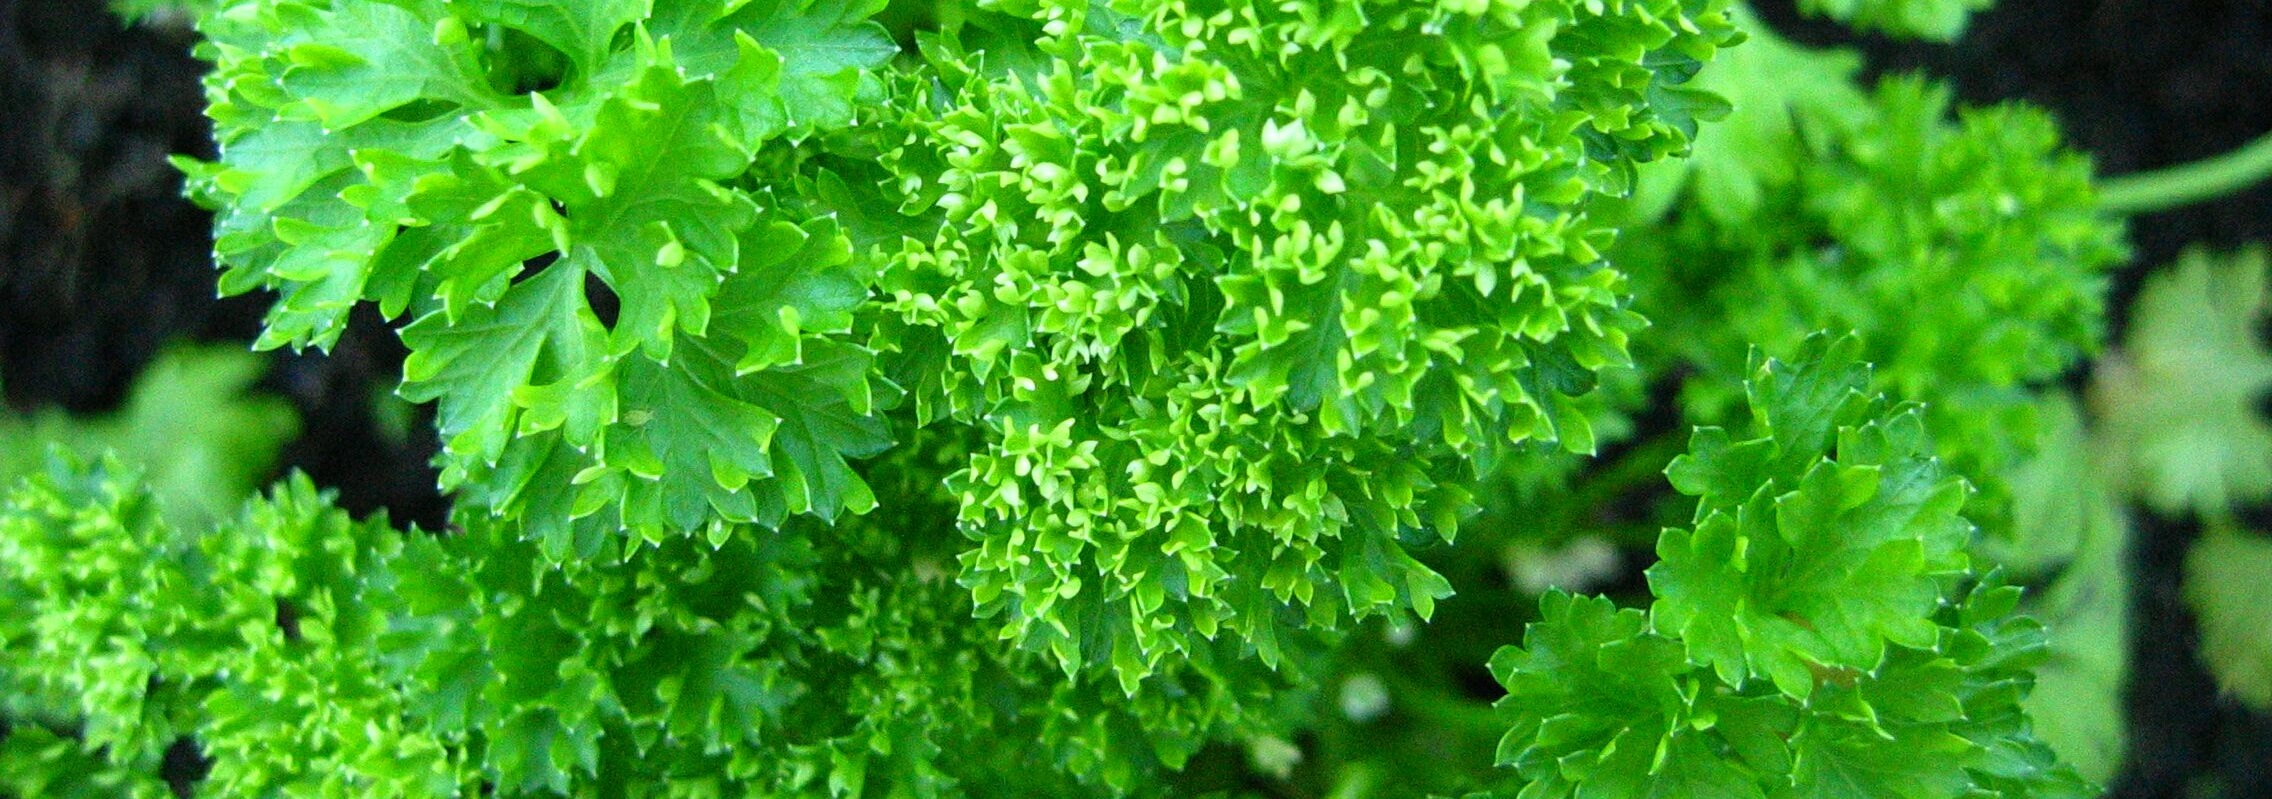 parsley-category.jpg